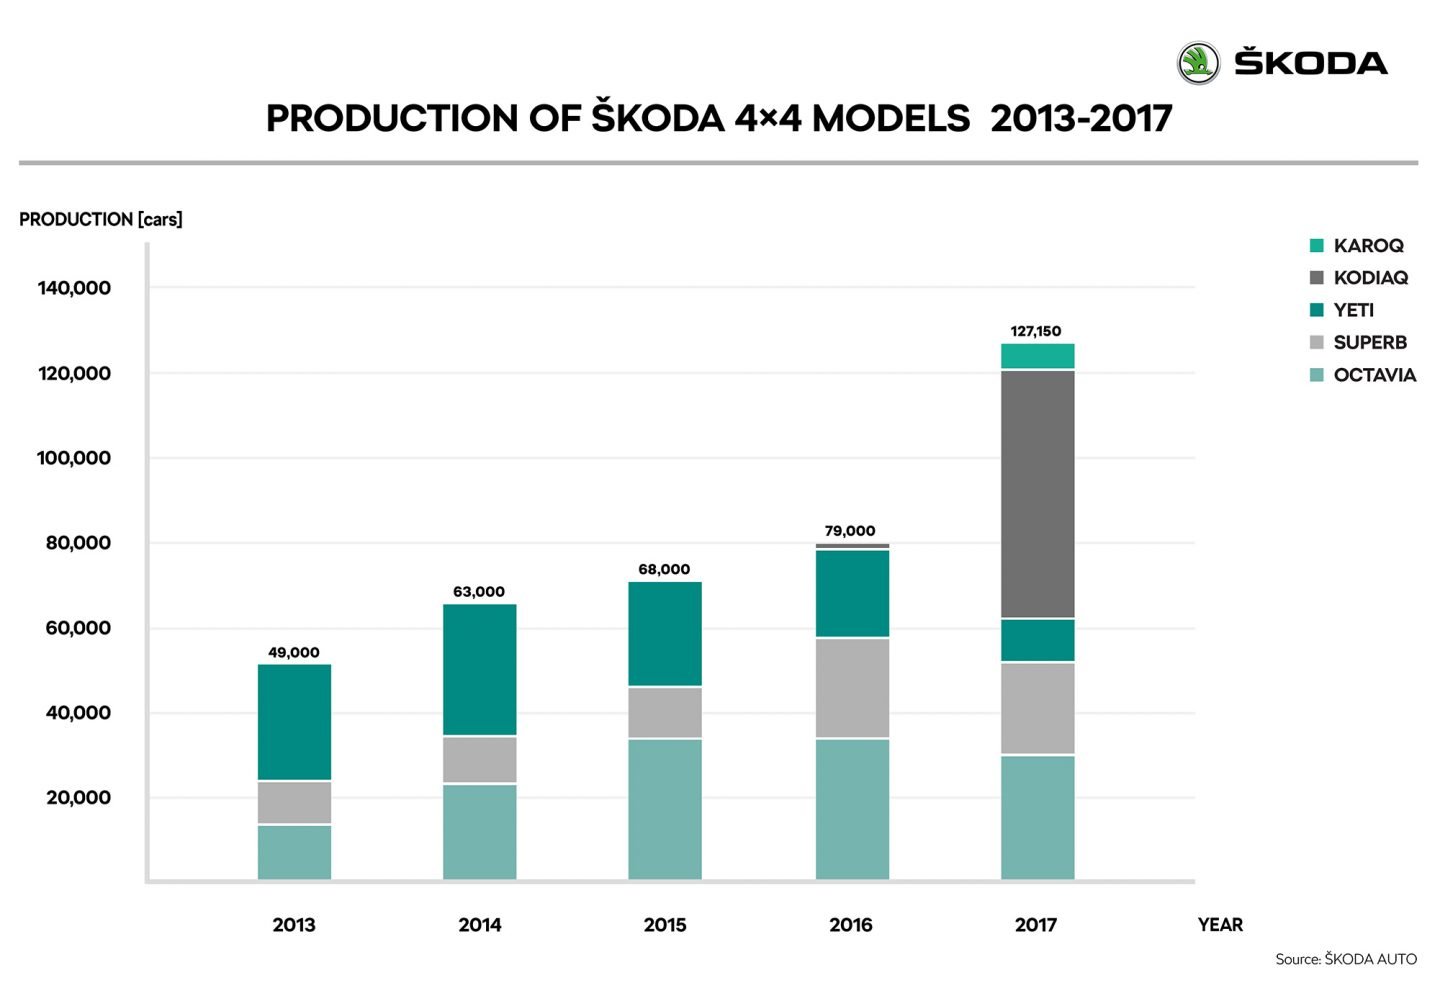 EN_04_Production_of_SKODA_4x4_models_2013_2017_RET